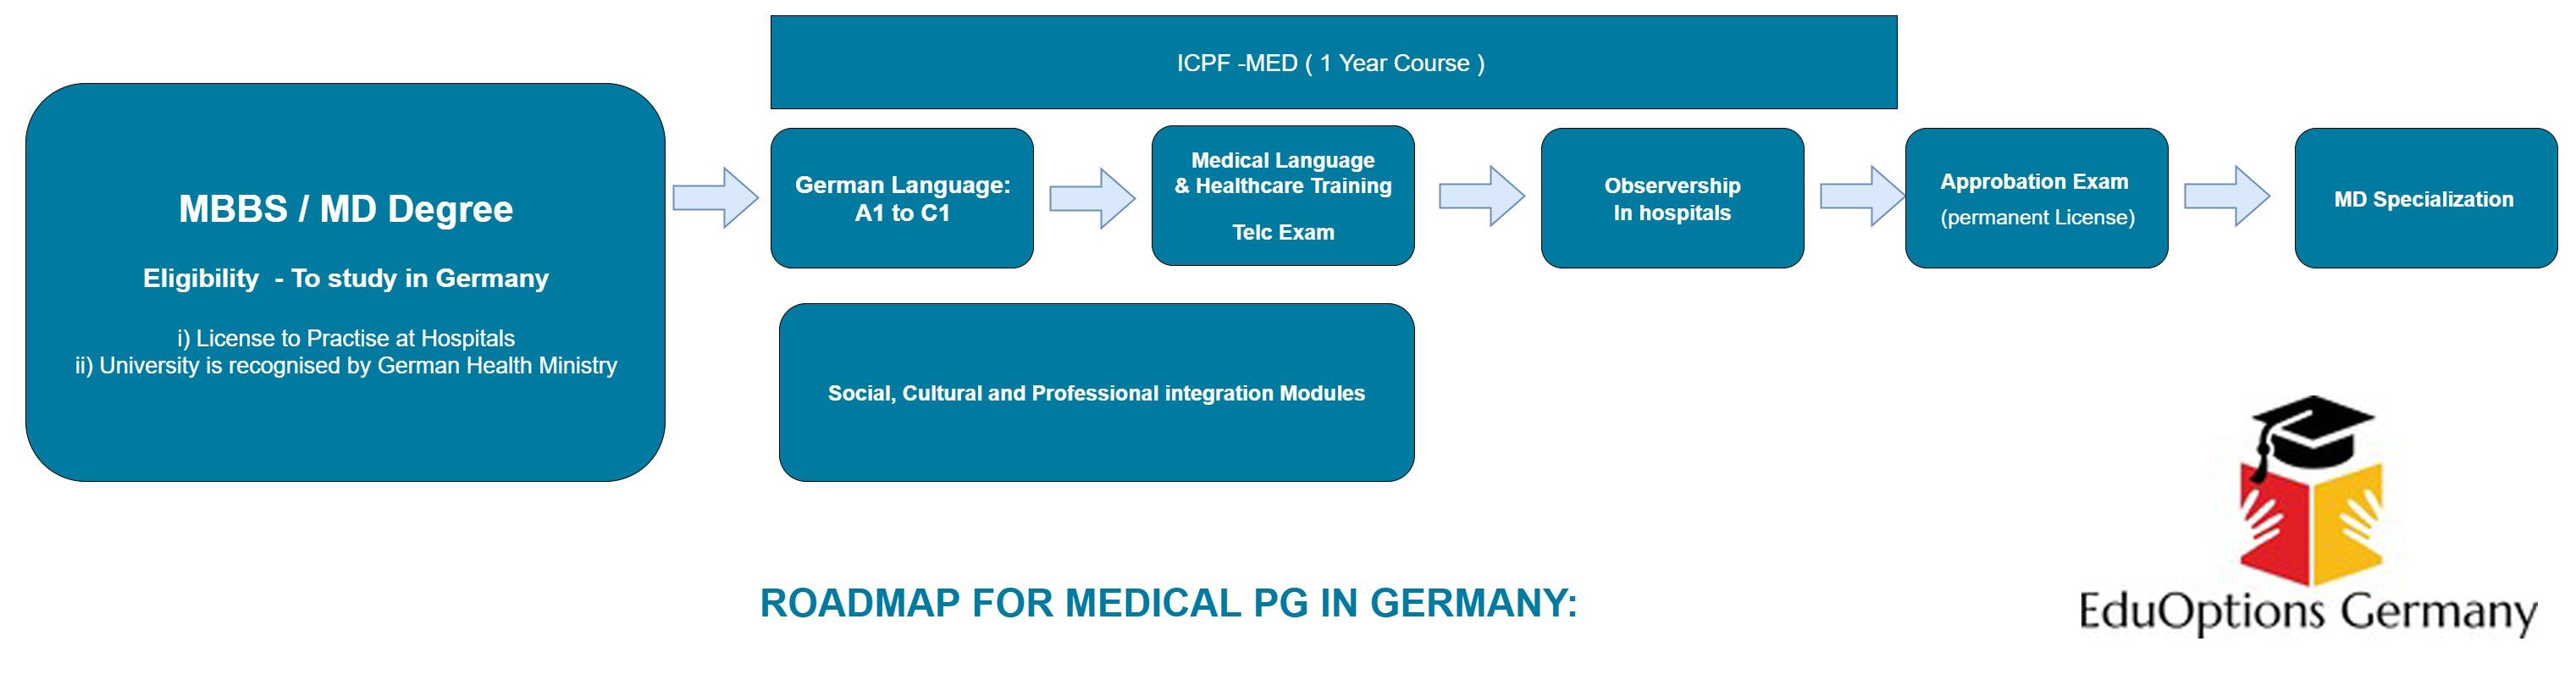 medical pg in Germany